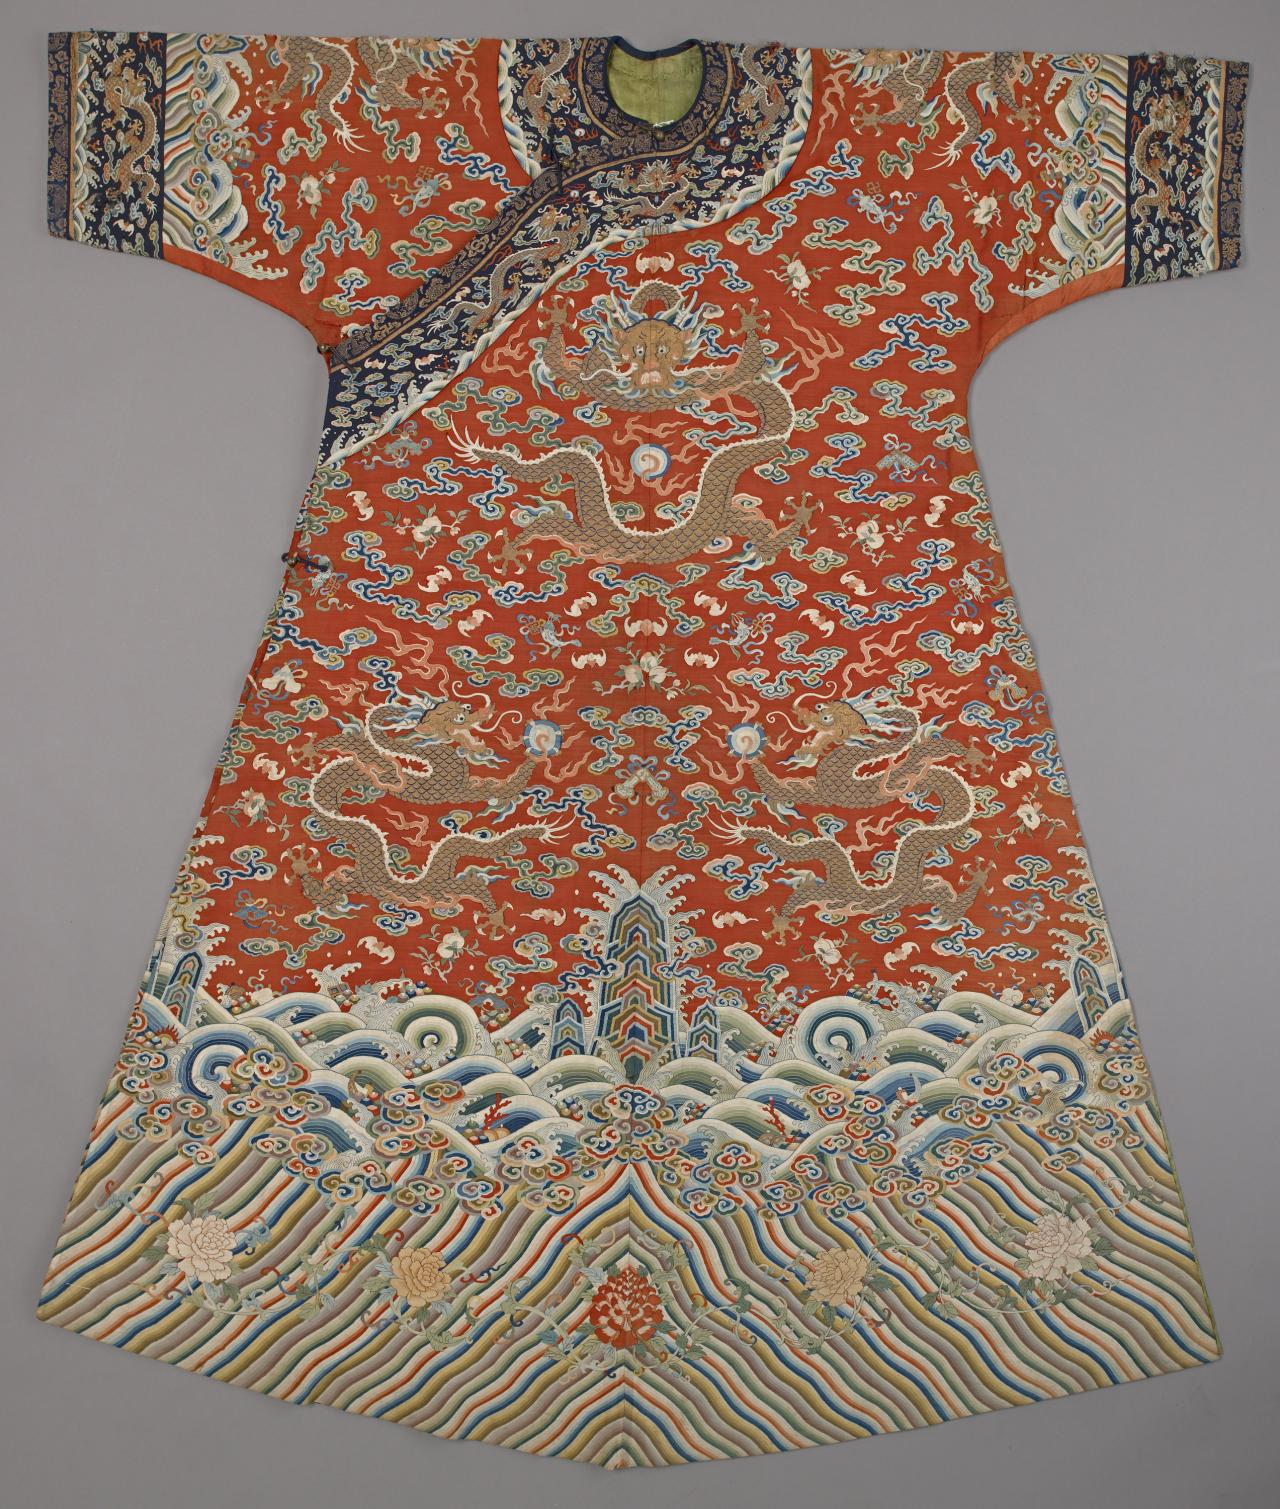 Empress's or imperial consort's semi-formal court robe (Jifu)